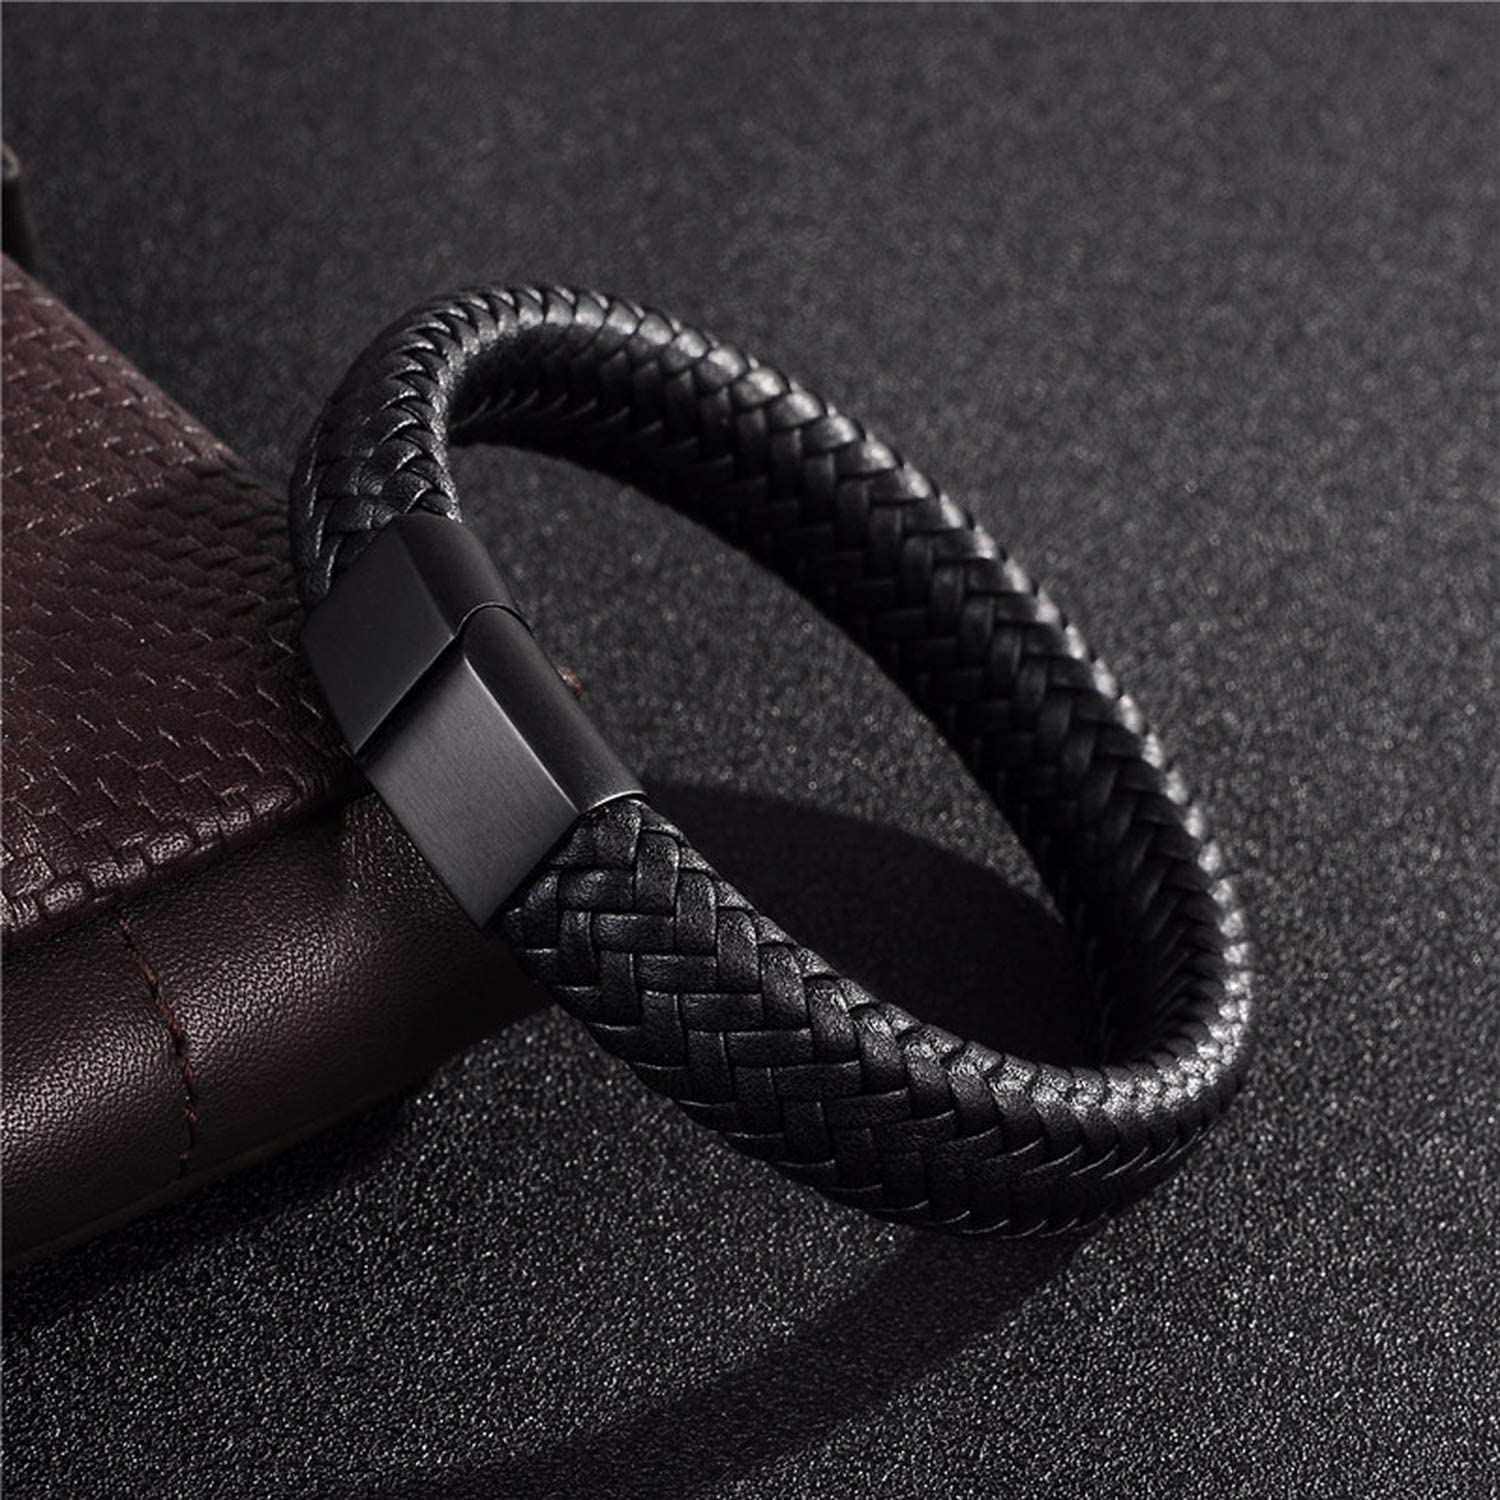 B07VJ59SBP Punk Men Jewelry Black/Brown Braided Leather Bracelet Stainless Steel Magnetic Clasp Bangles 18.5/22/20.5Cm,Brown B2,22Cm 61T8H2BMXvLL